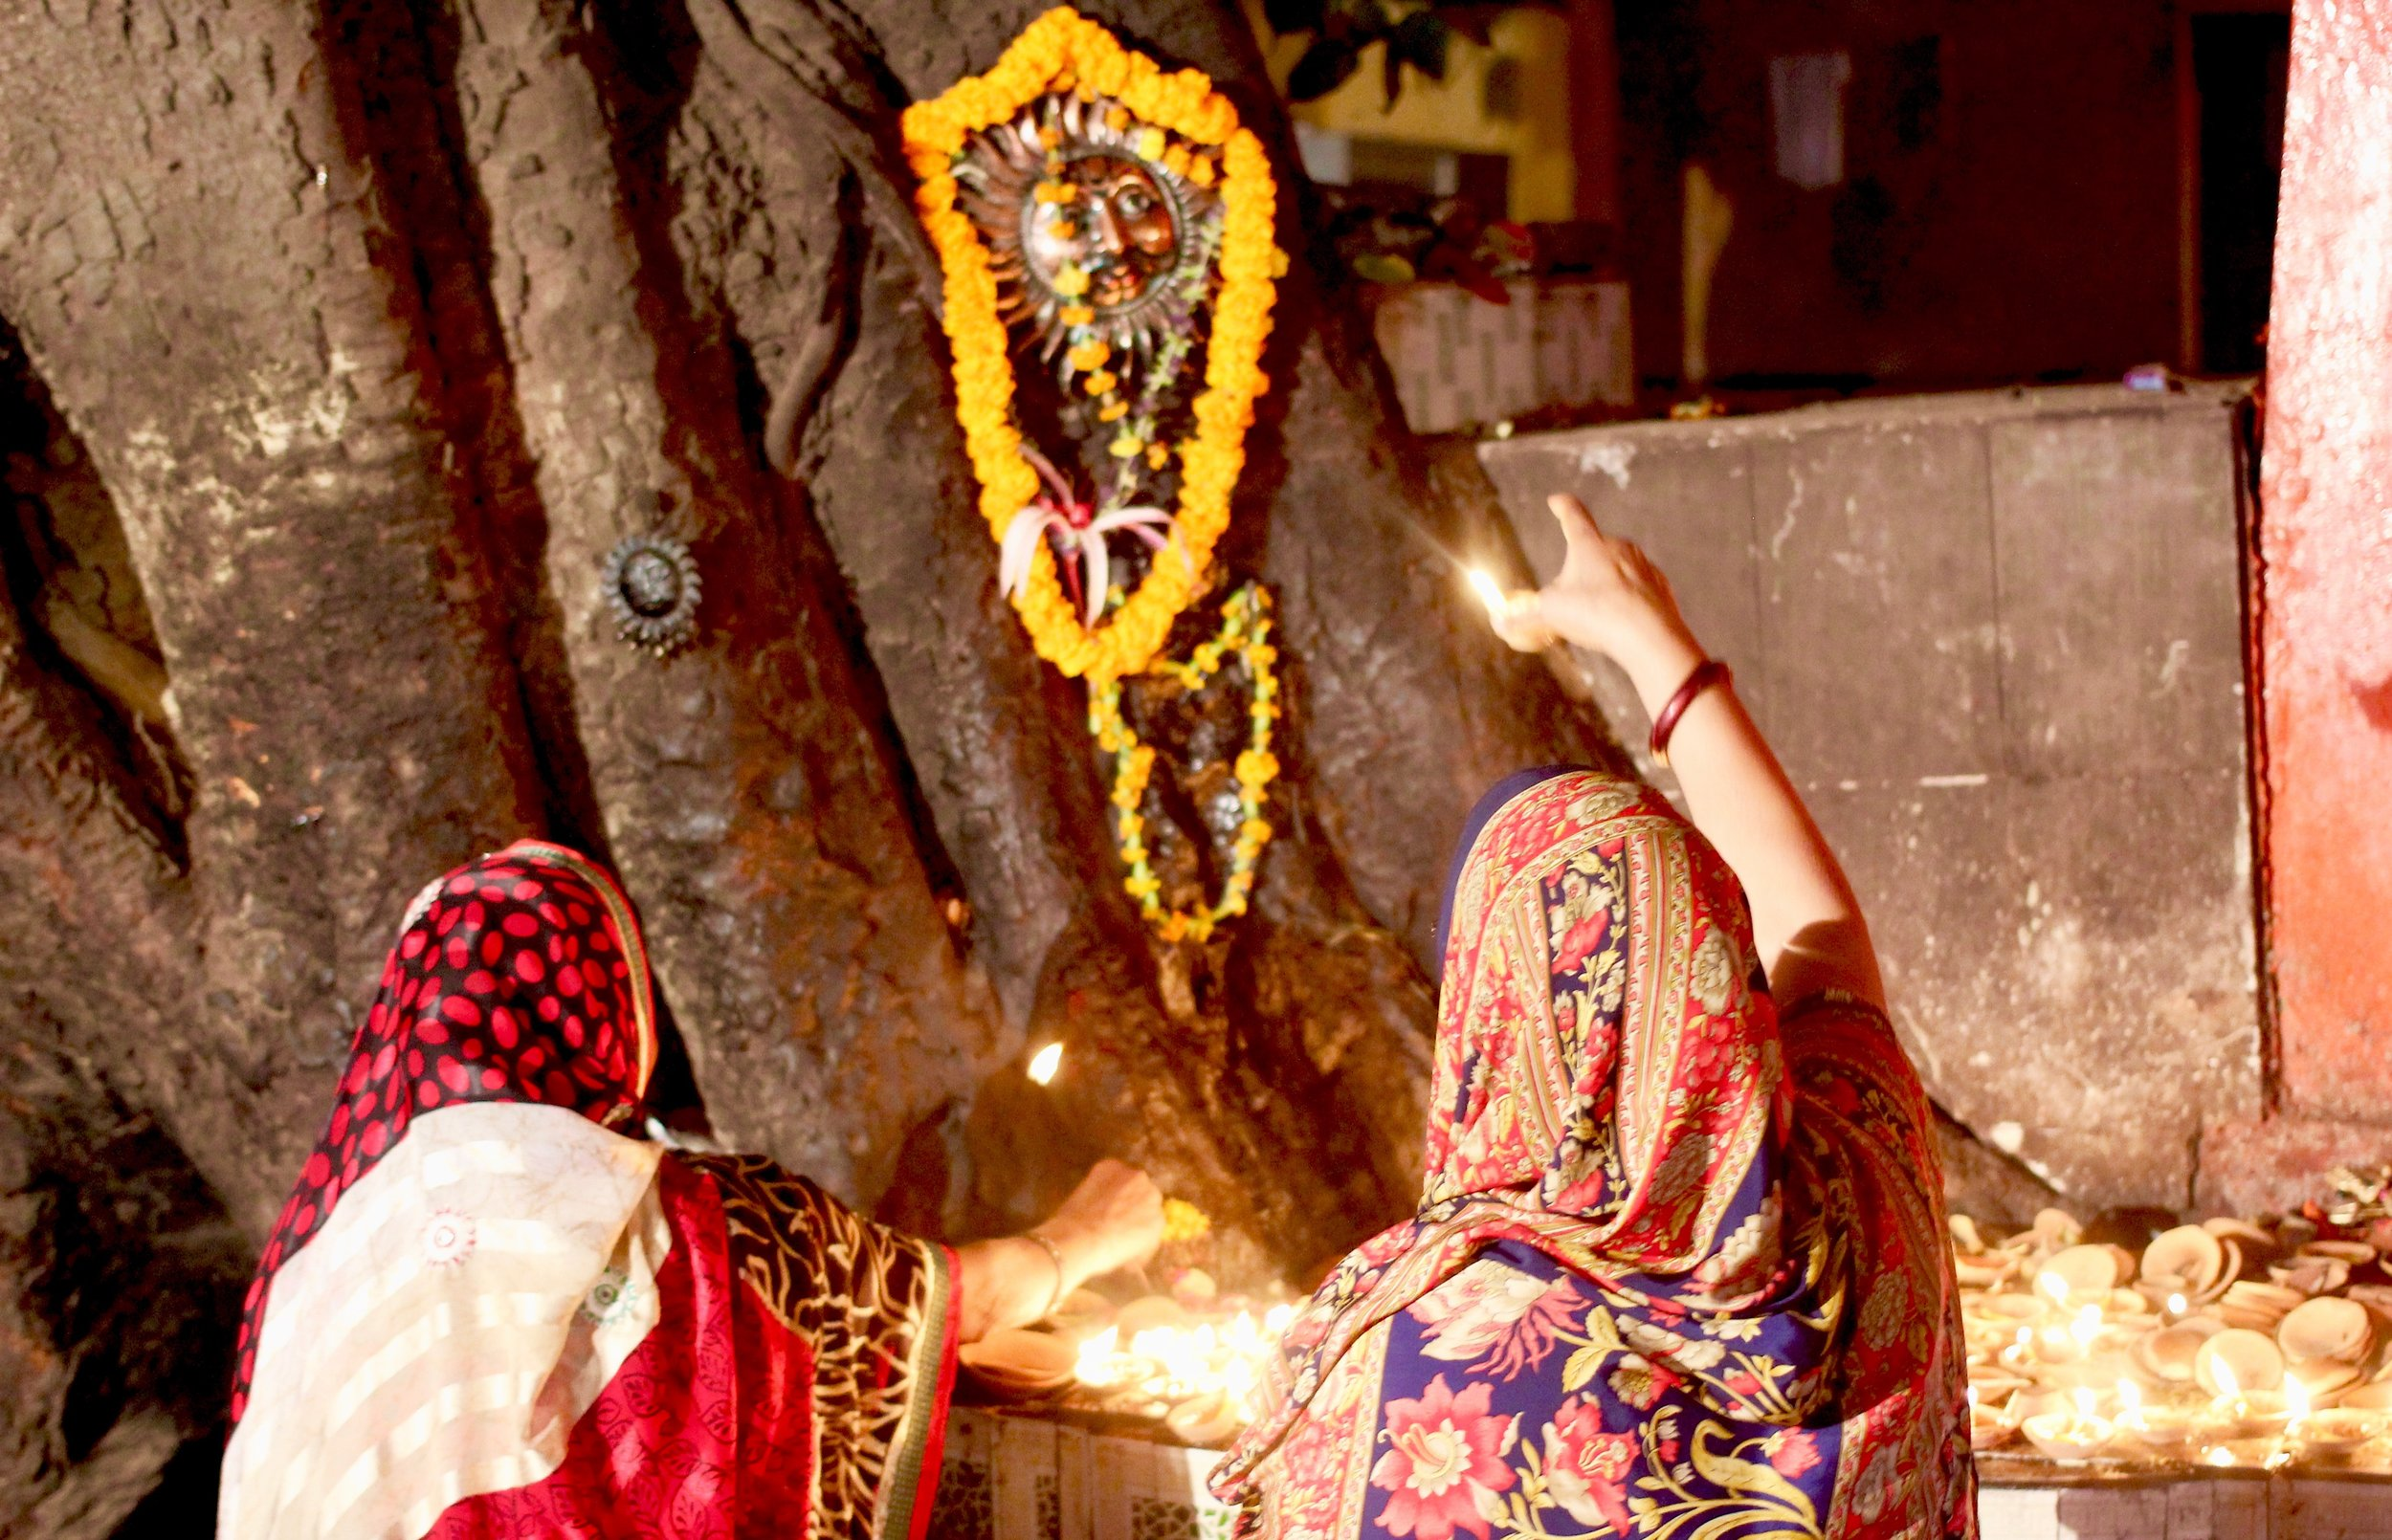 Women making puja (prayer) at a makeshift altar adorned with candles lit inside tiny ceramic bowls.